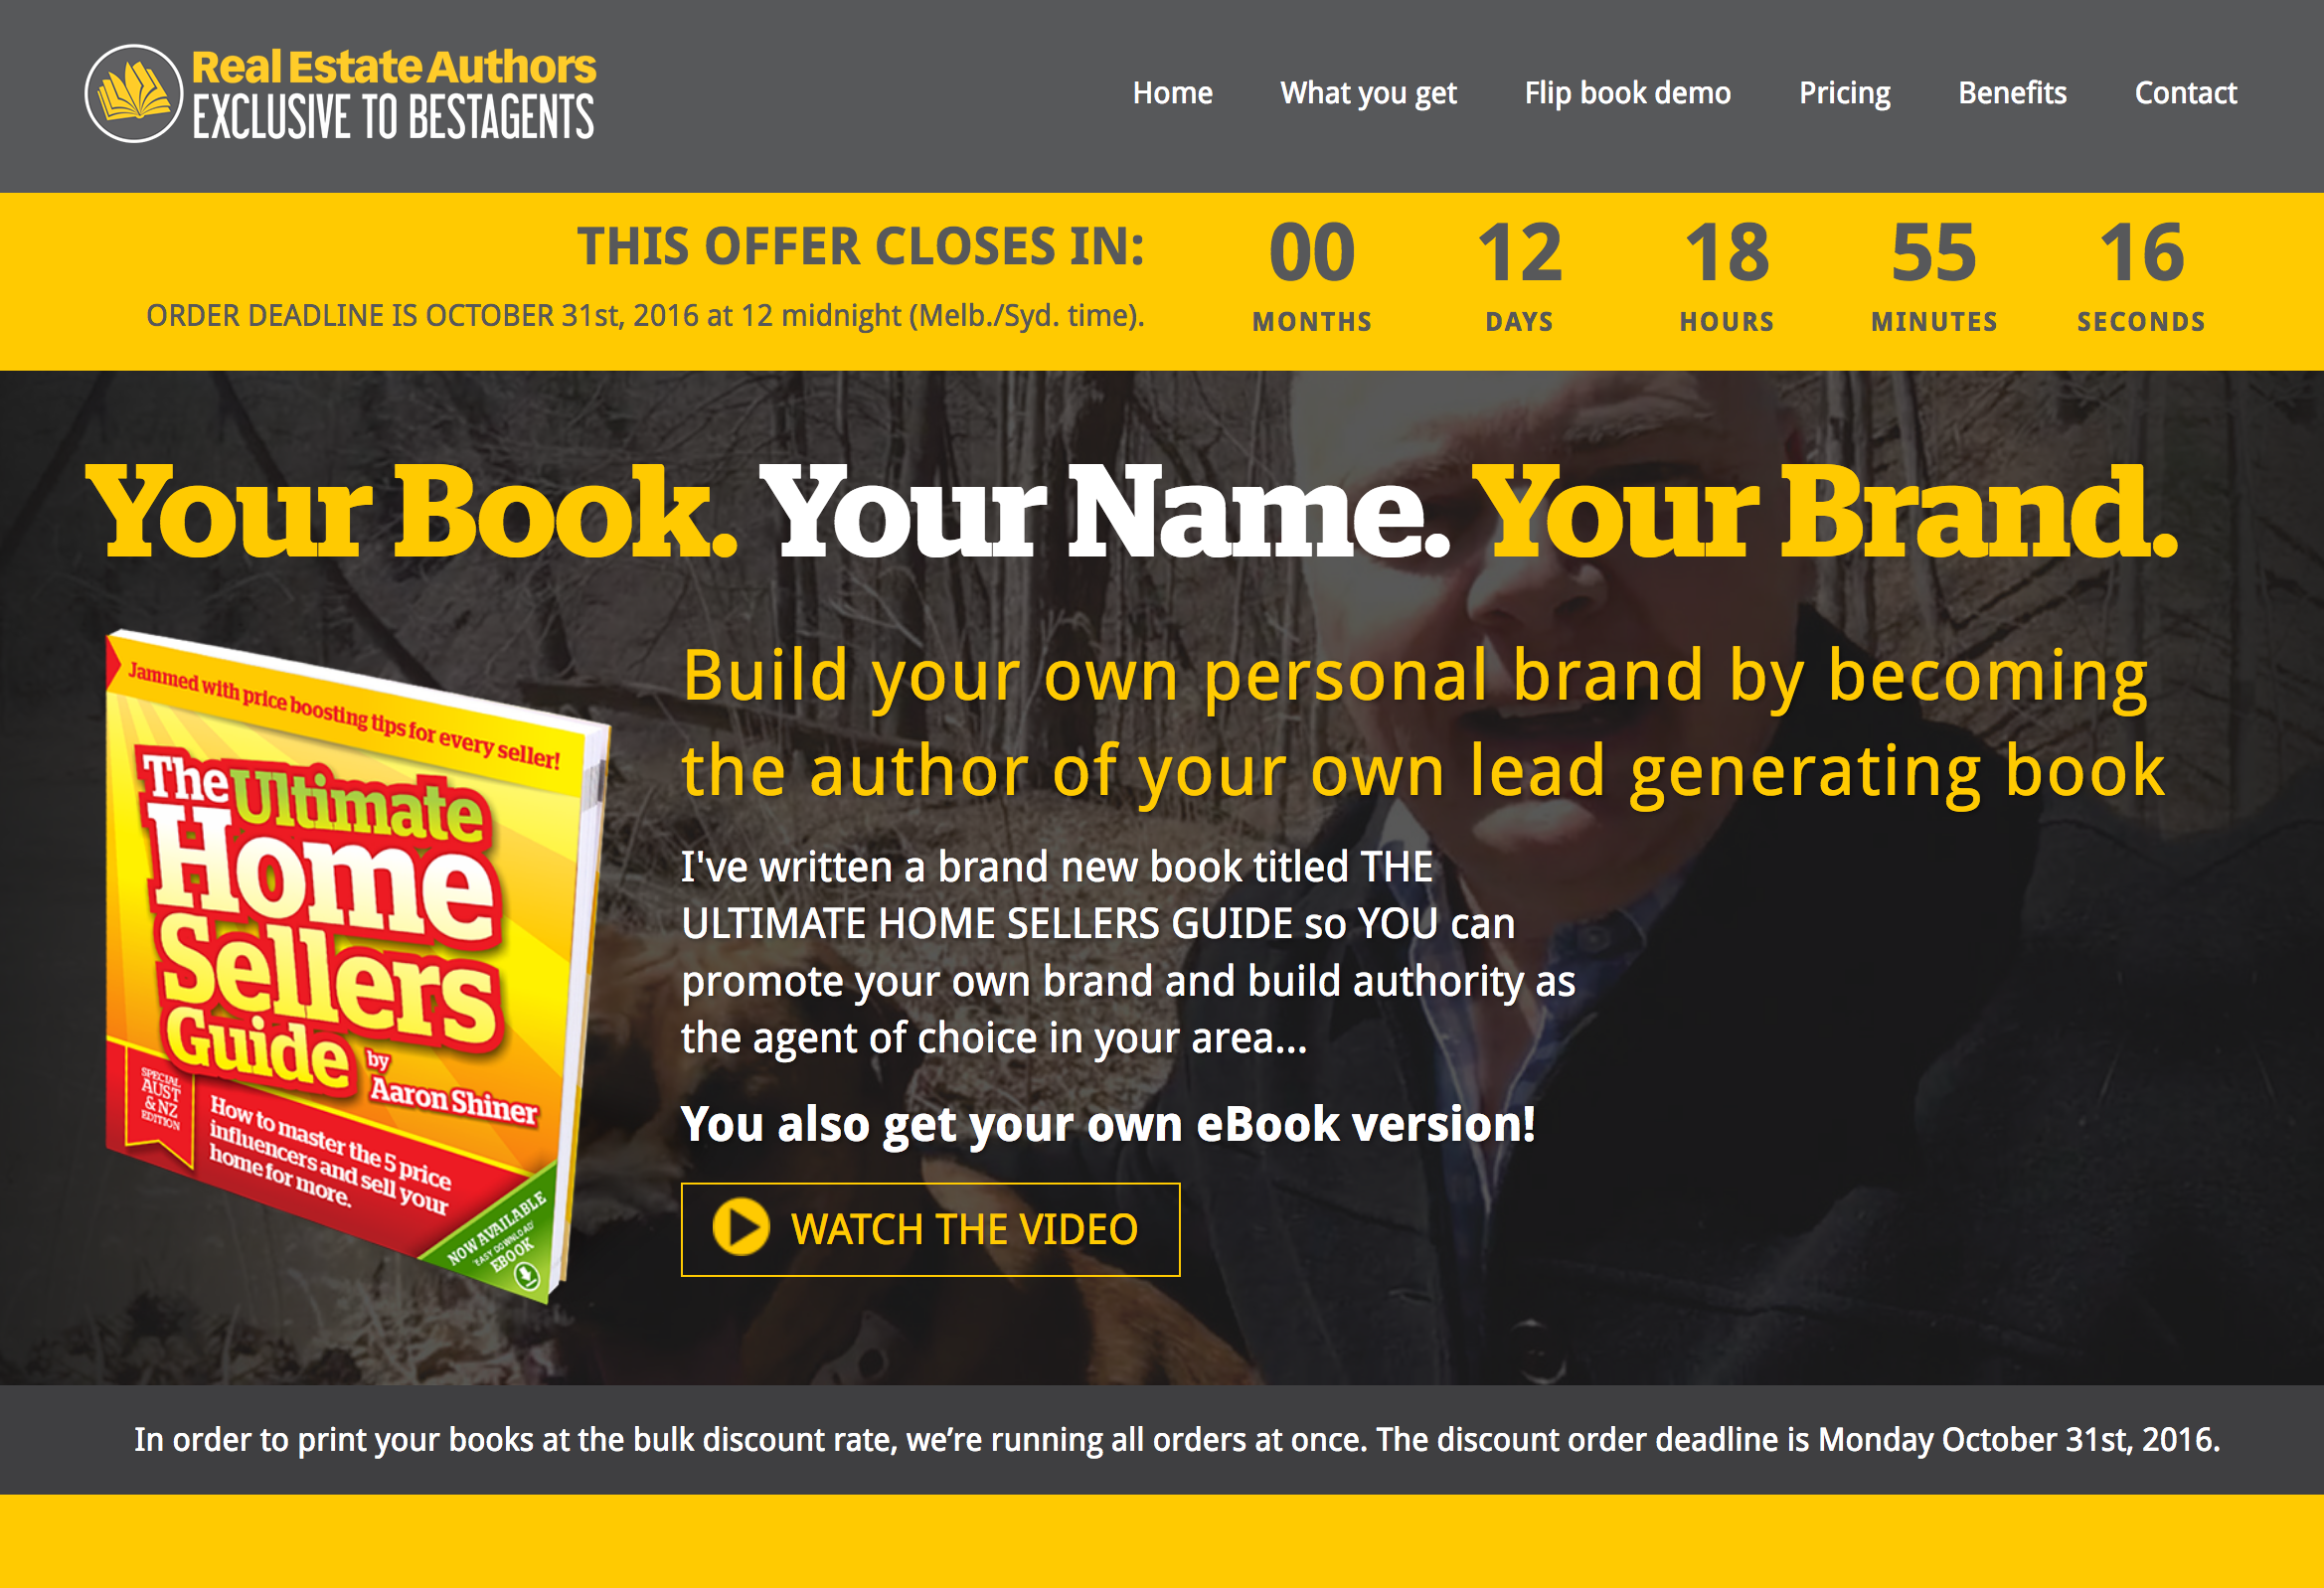 your book your your brand how to build your brand your book your your brand how to build your brand your own book top agents playbook